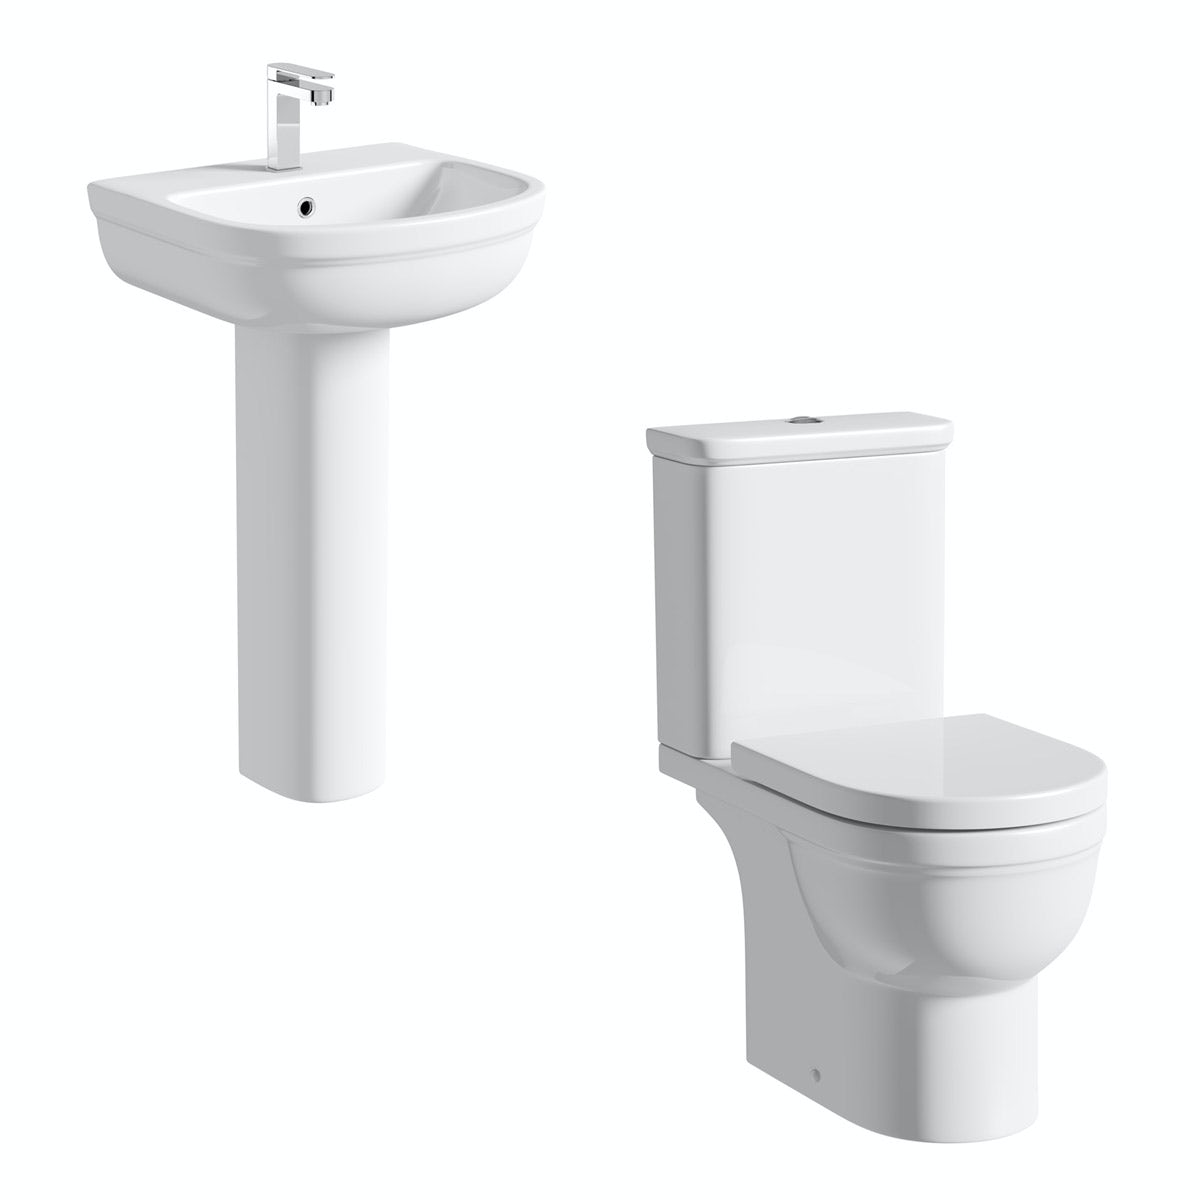 Orchard Elsdon cloakroom suite with full pedestal basin 550mm